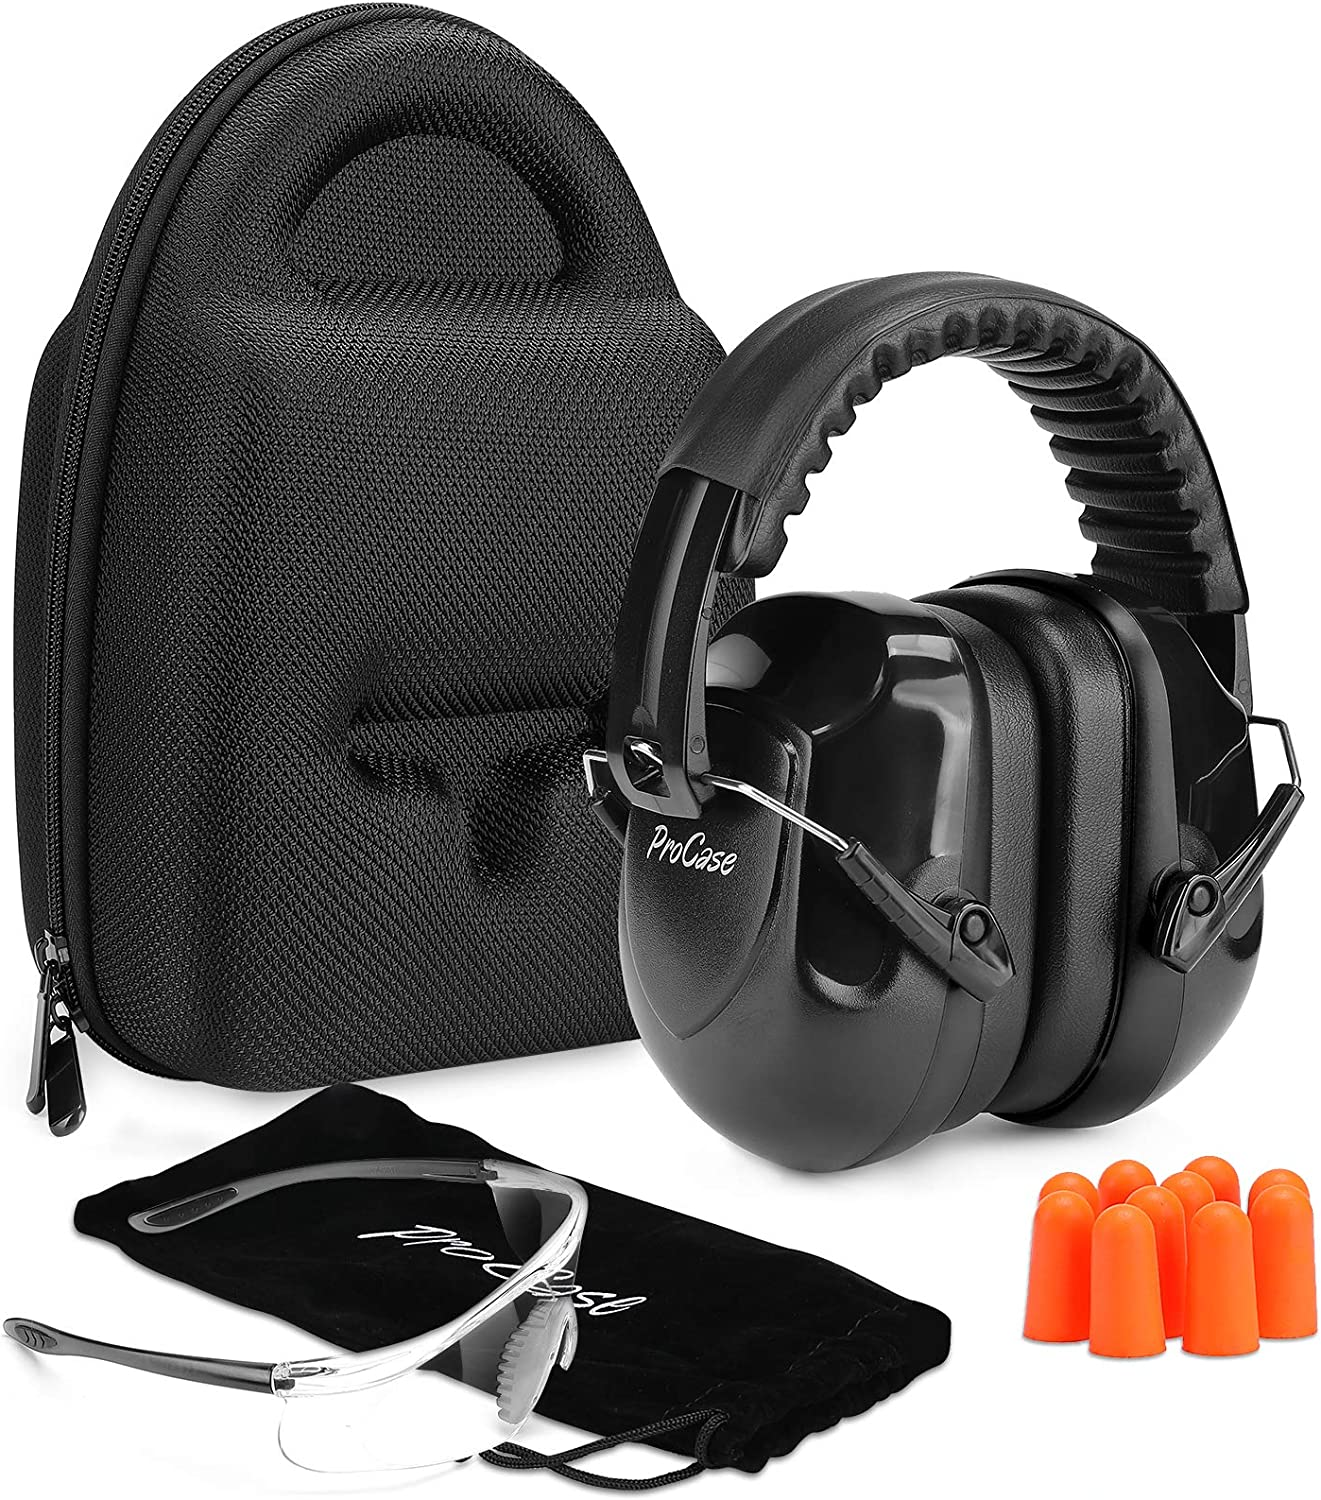 ProCase Shooting Ear Protection Earmuffs, Gun Safety Glasses and Soft Earplugs, Shooting Range Accessories with Protective Case, Gun Range Ear and Eye Protection Kit, Shooting Safety Equipment